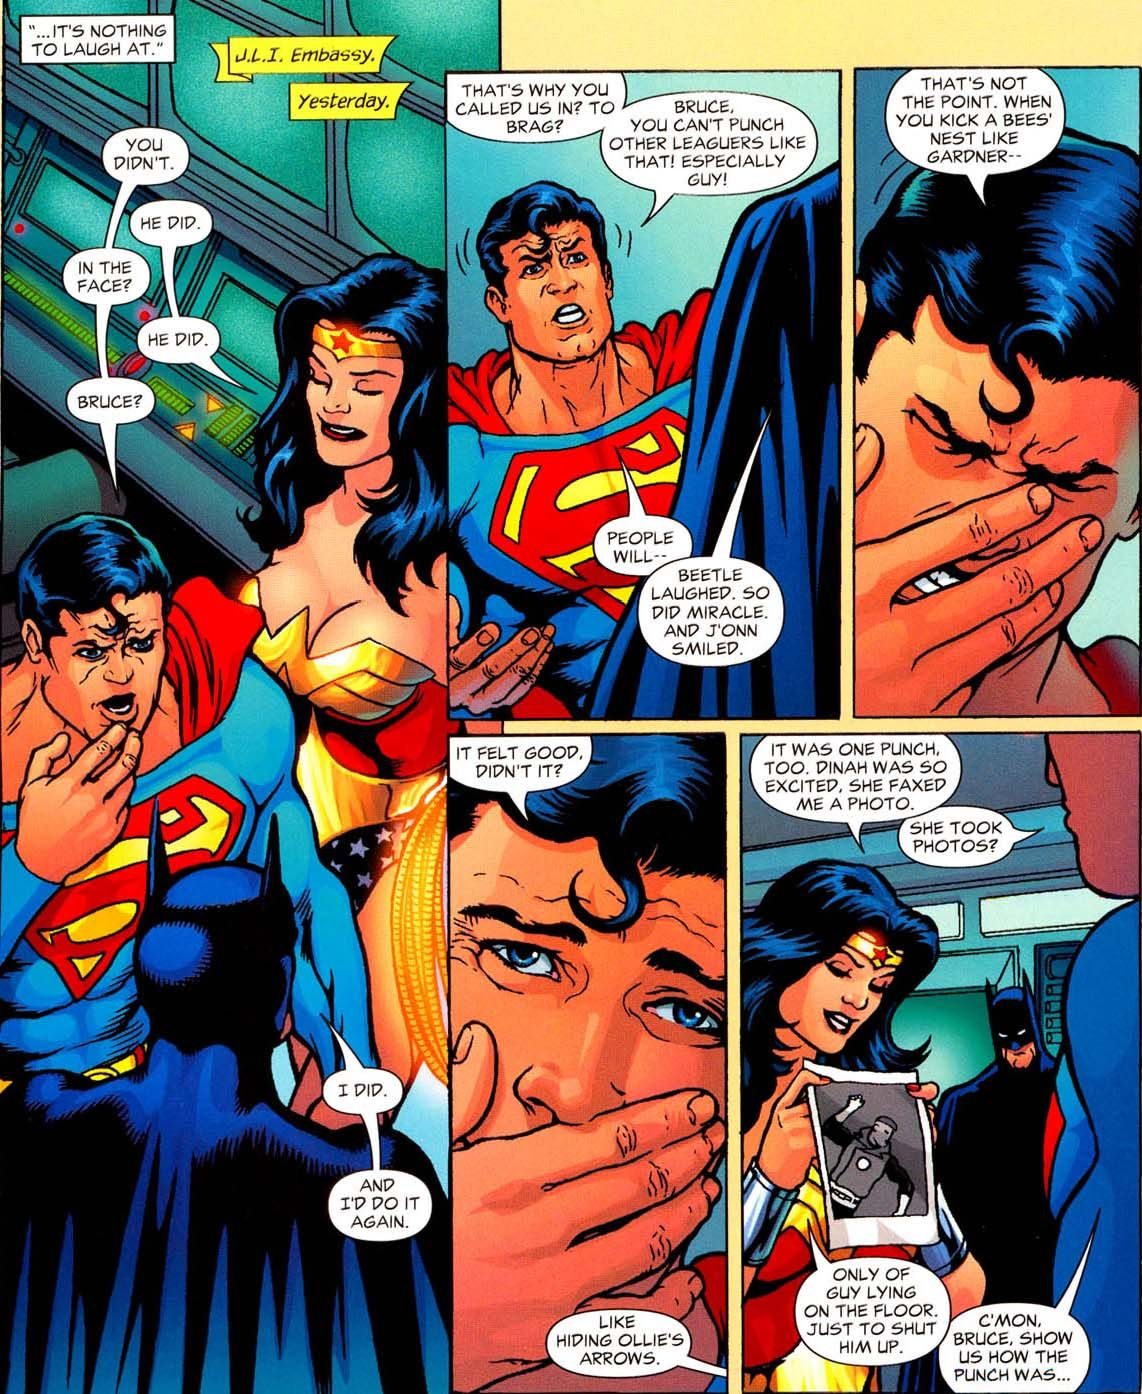 Superman: You didn't. Wonder Woman: He did. Superman: In ...